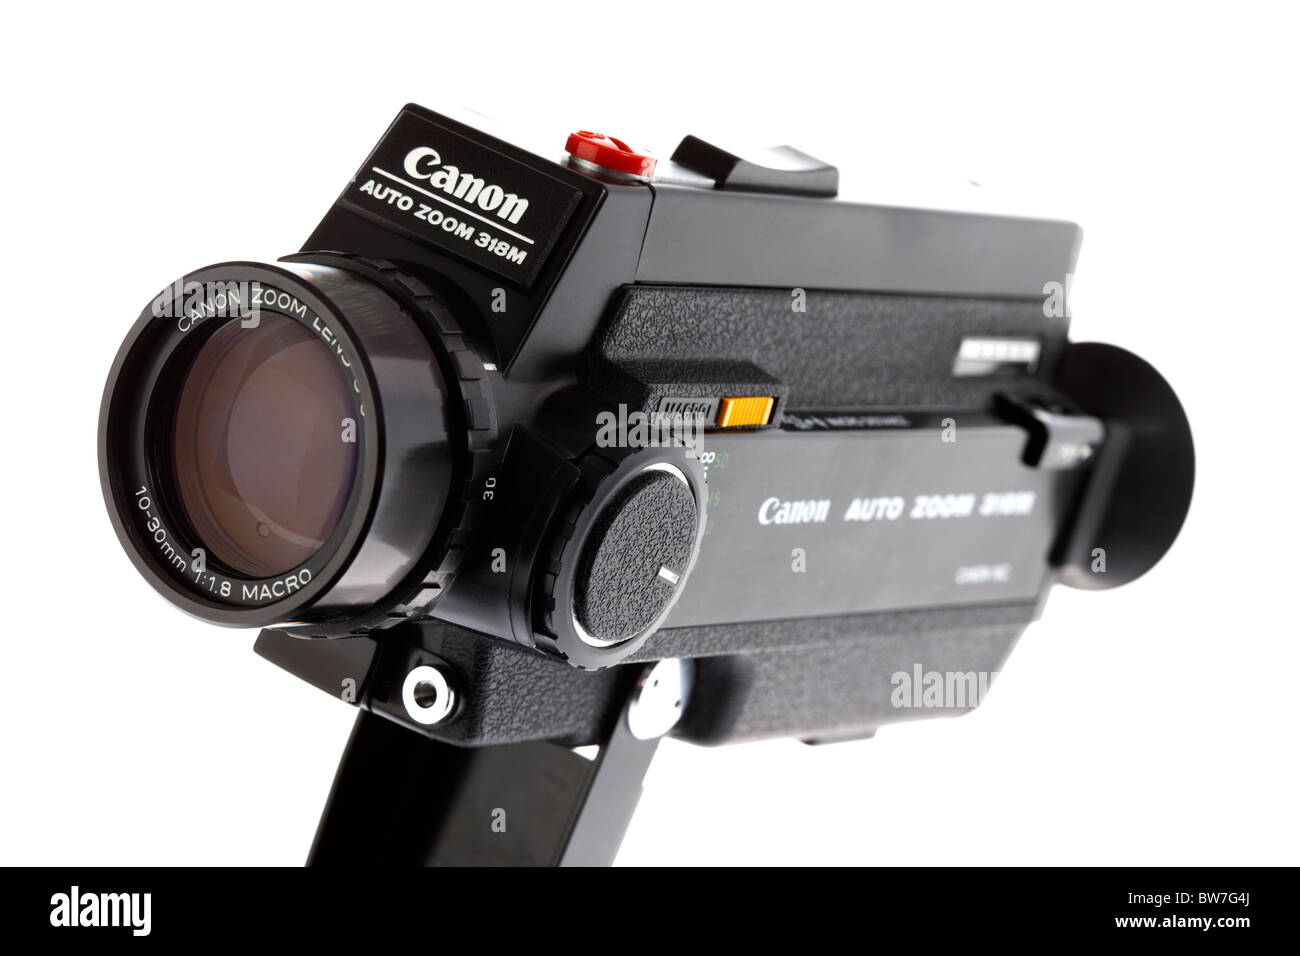 super8 cine home movie camera made by canon on white background - Stock Image